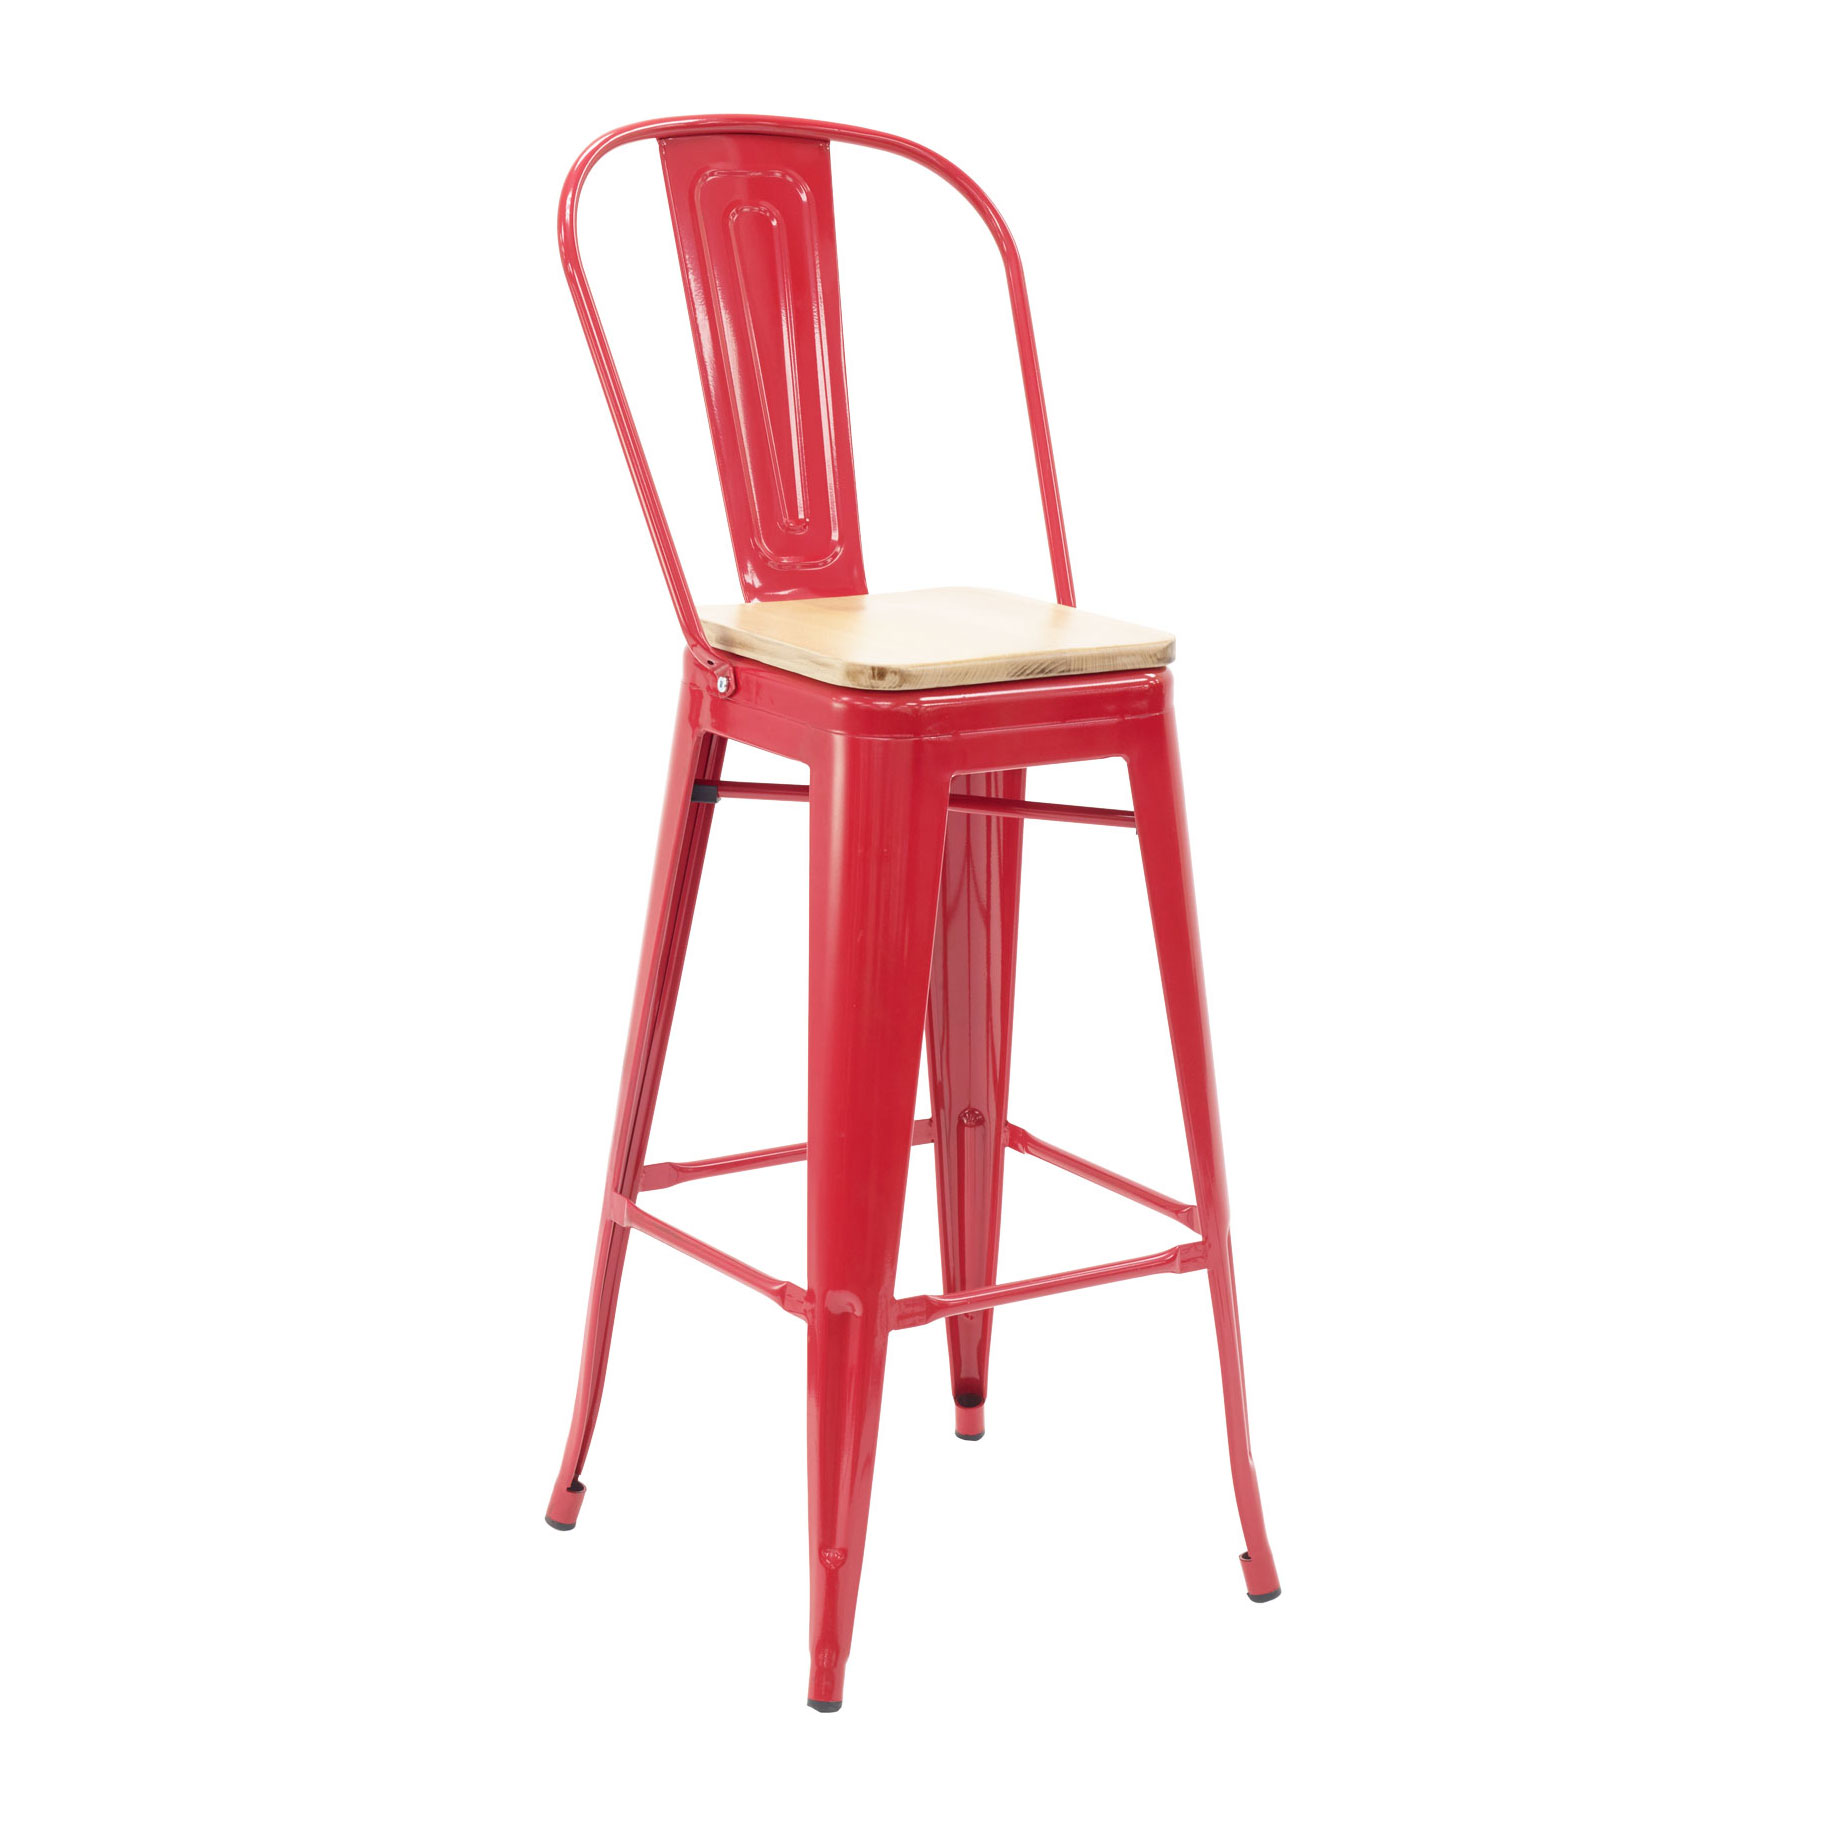 Florida Seating IND BARSTOOL RED GR1 bar stool, indoor